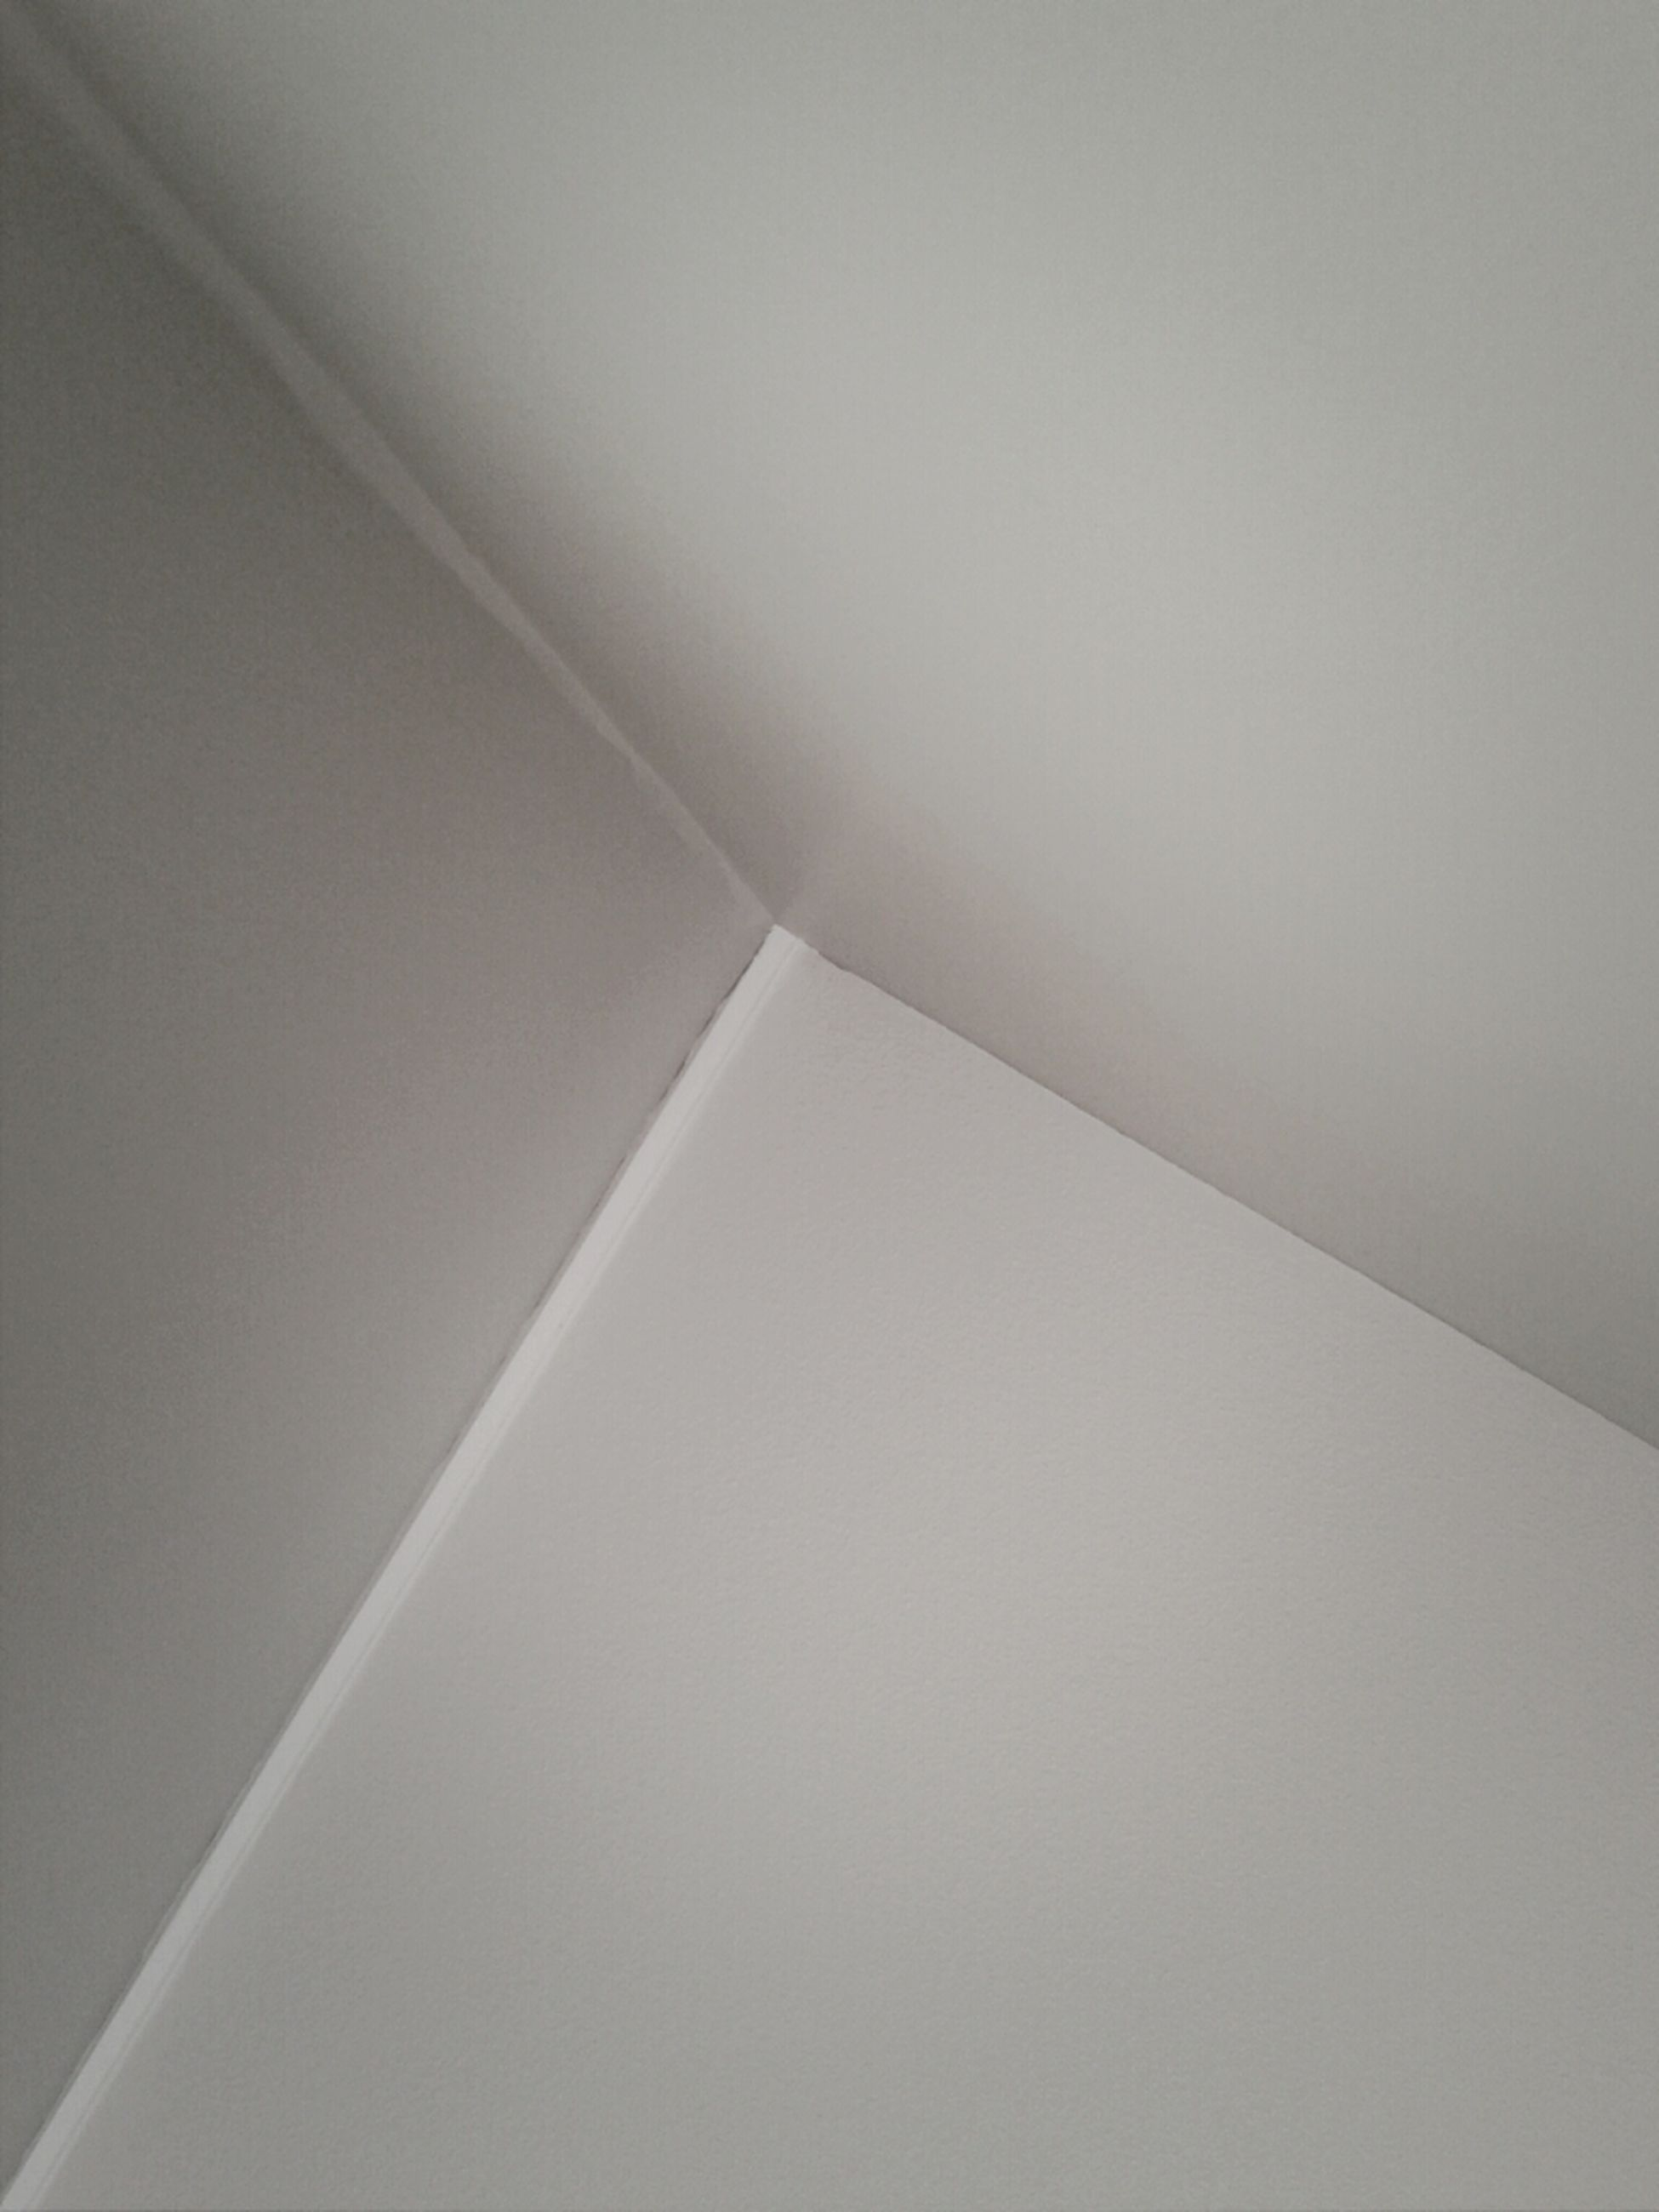 low angle view, architecture, built structure, indoors, copy space, wall - building feature, no people, day, pattern, ceiling, white color, wall, backgrounds, building, part of, sunlight, clear sky, directly below, close-up